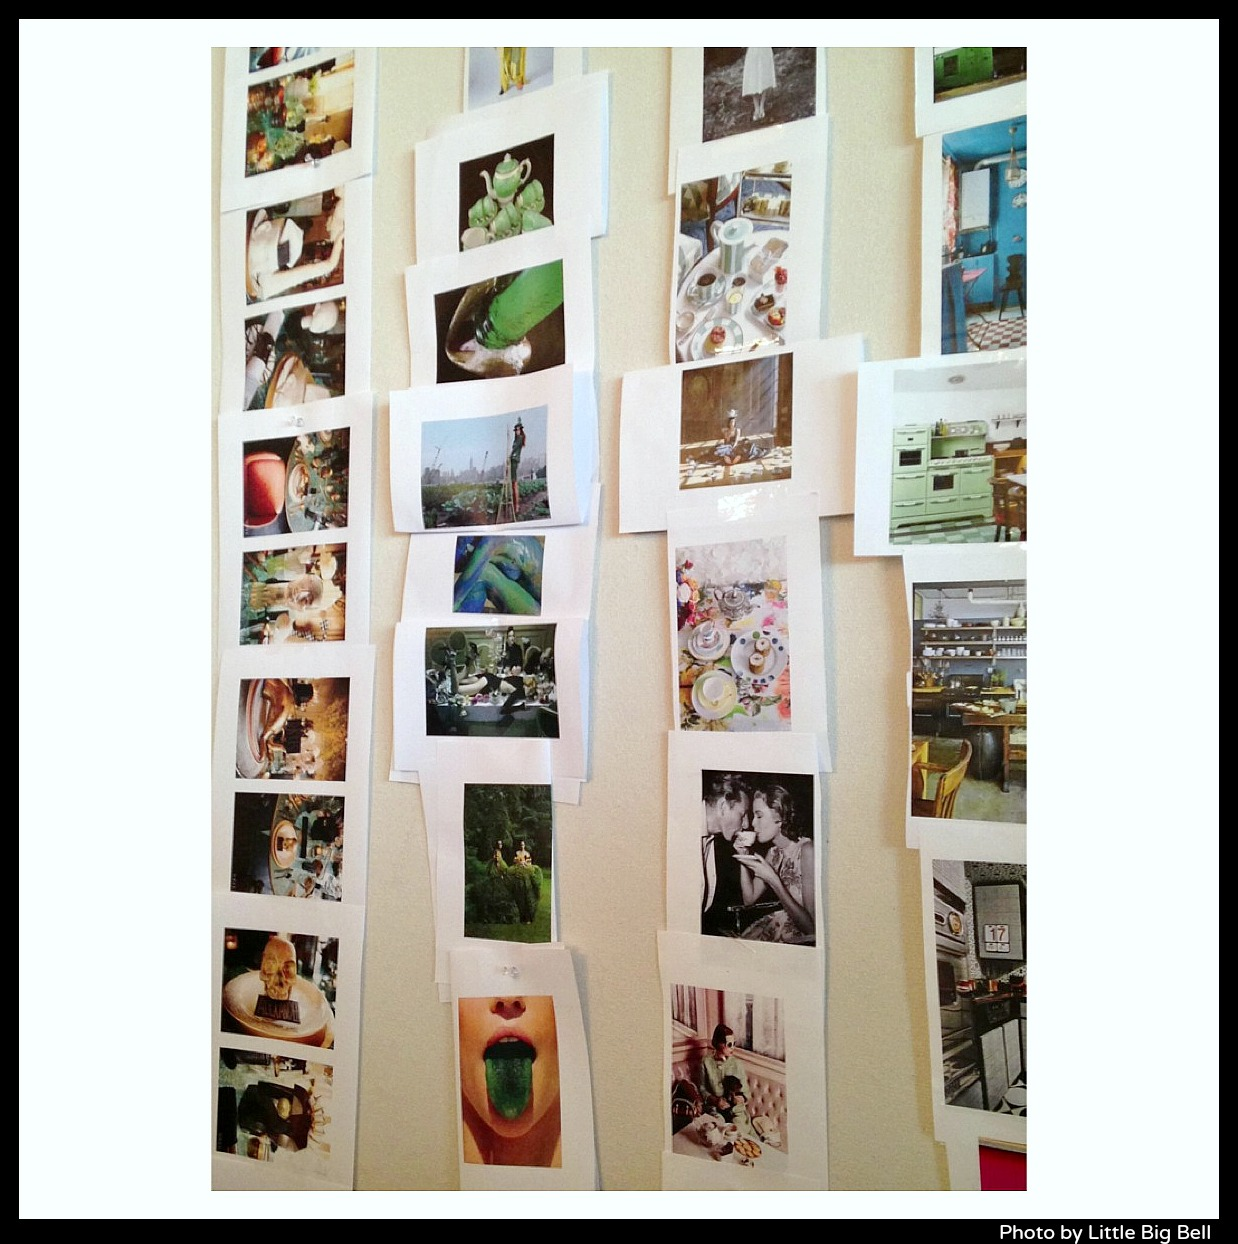 Glamorous Interior Design By Kelly Wearstler: LittleBIGBELL A Visit To Kelly Wearstler's LA Office And